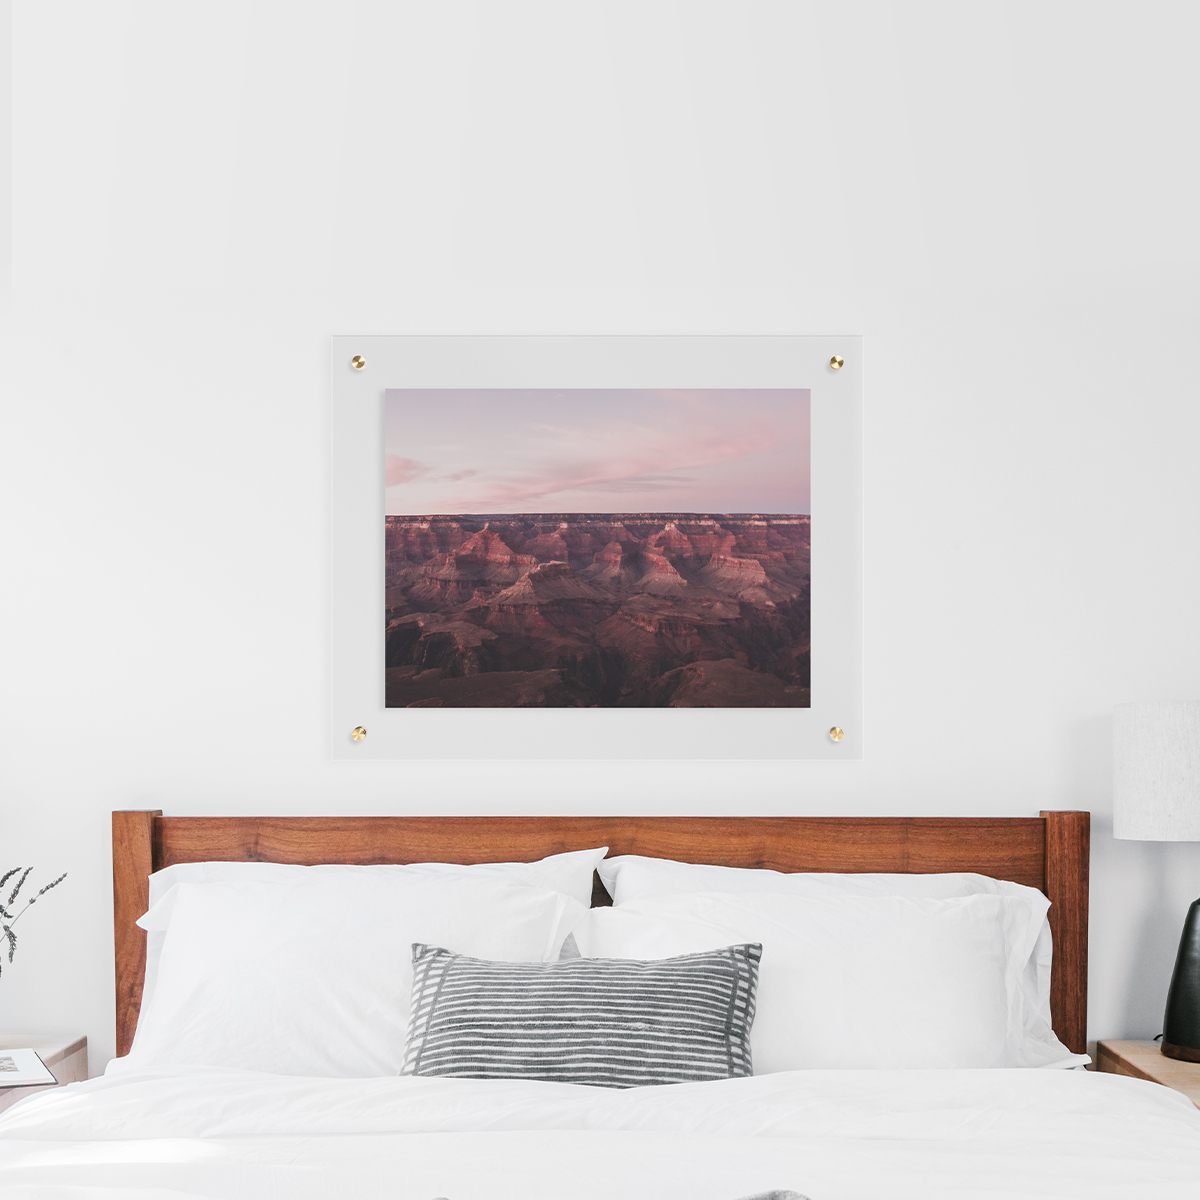 Artifact Uprising Floating Frame hung above a bed.